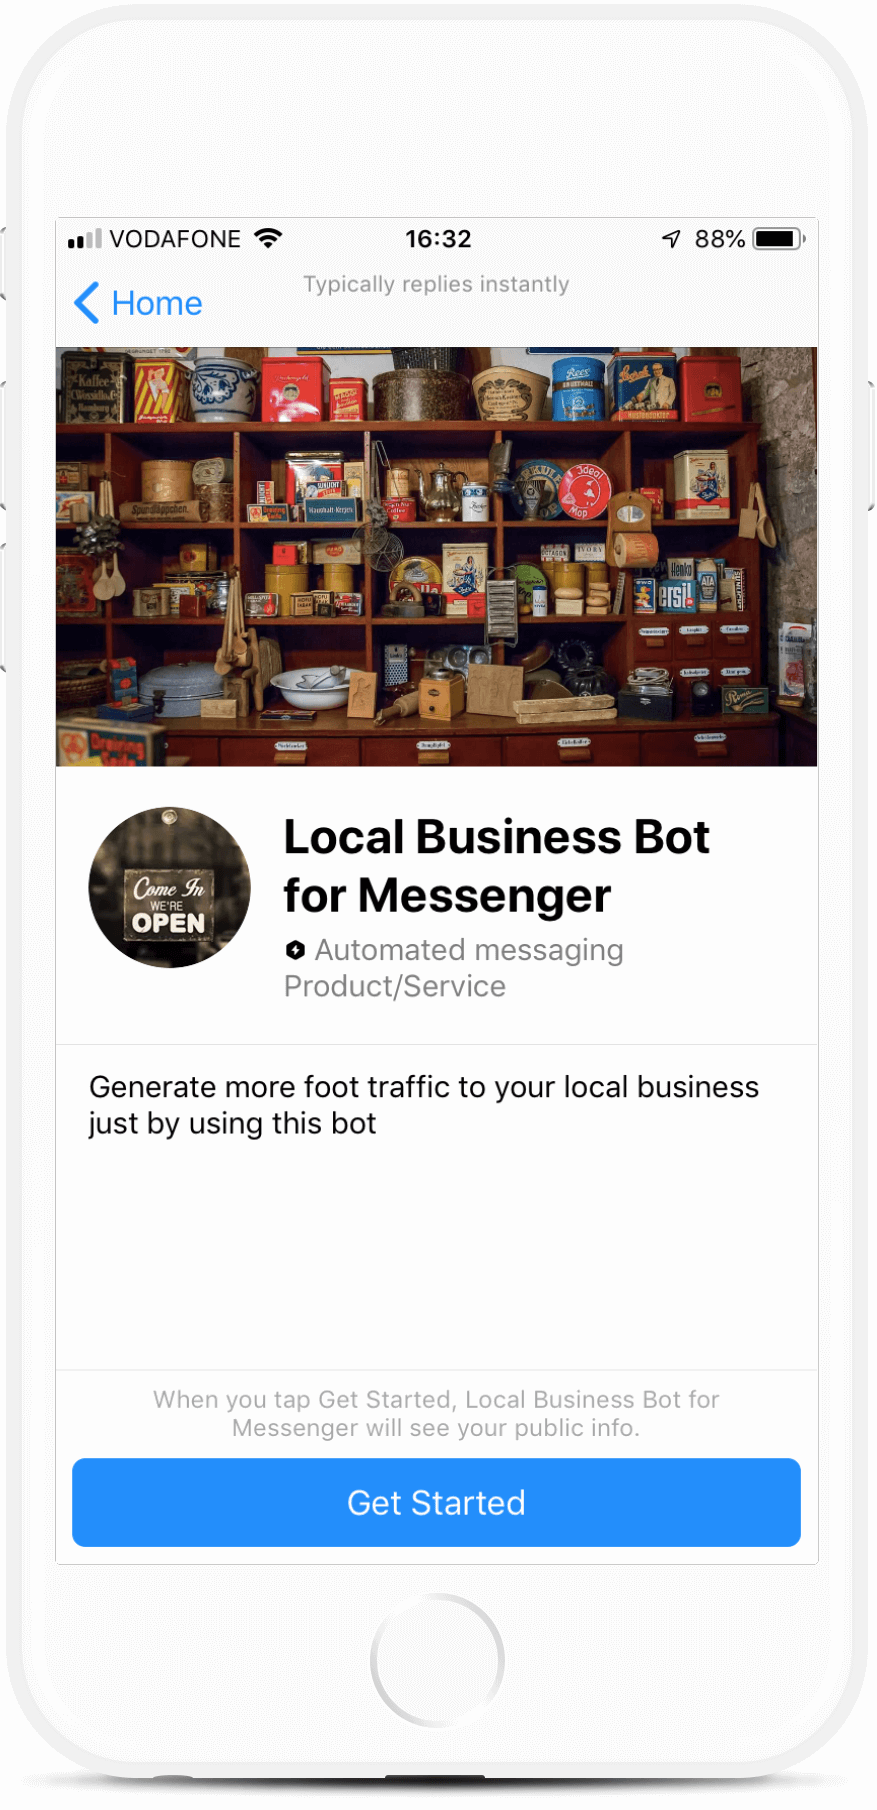 Brick and Mortar Messenger Bot for Local Businesses